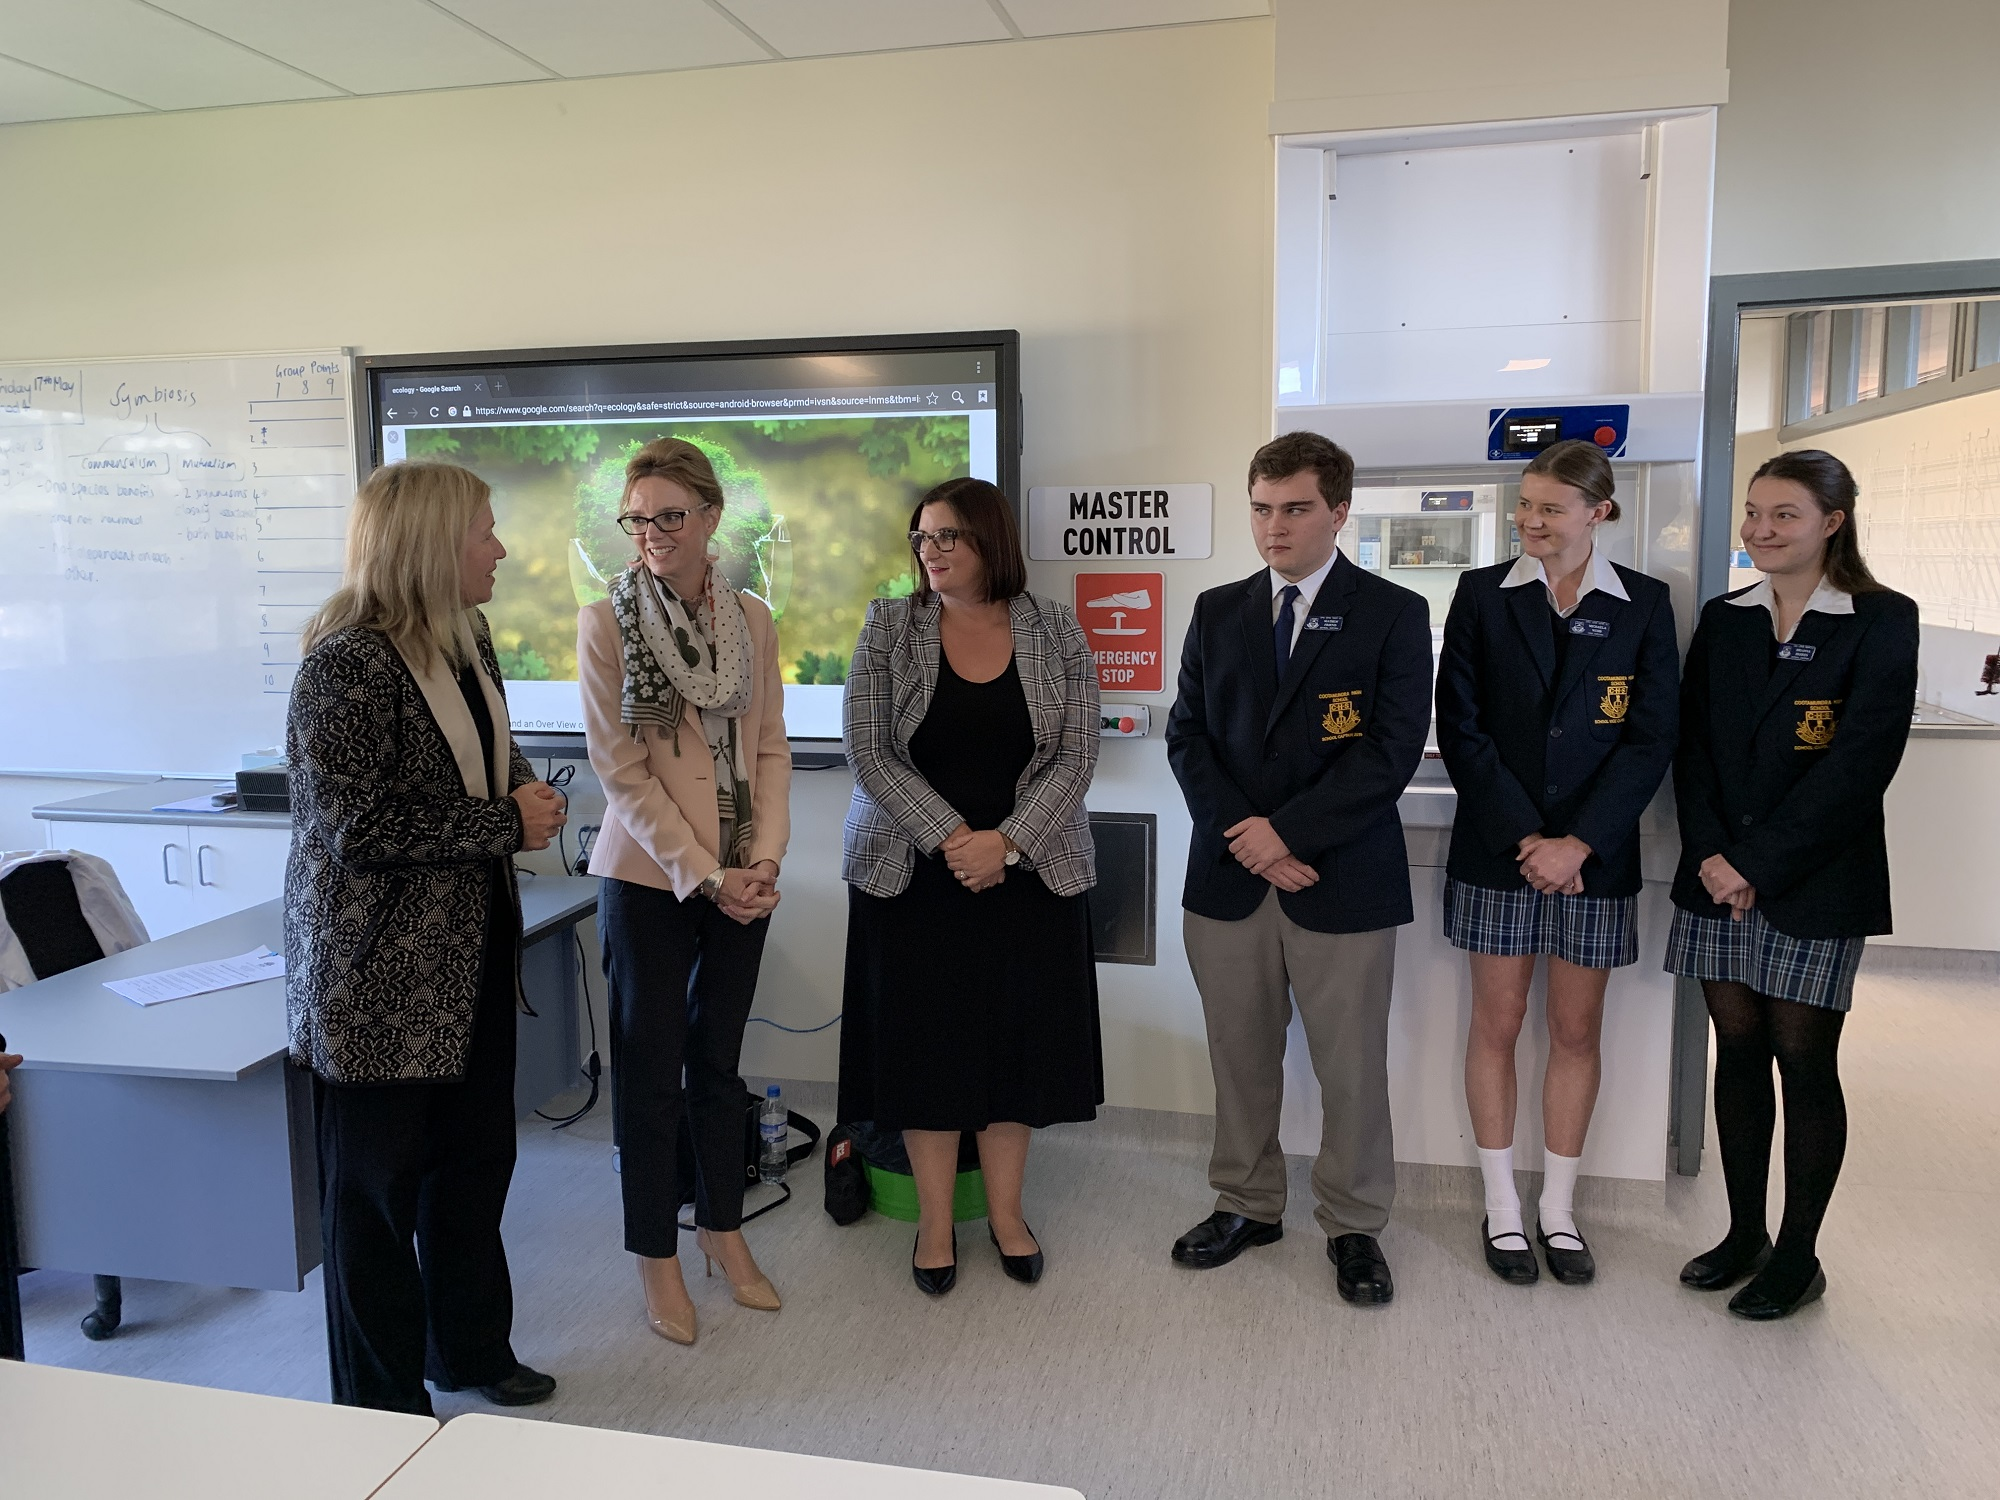 Steph Cooke MP and Minister Sarah Mitchell stand in science labs with three high school students in blazers and a teacher.